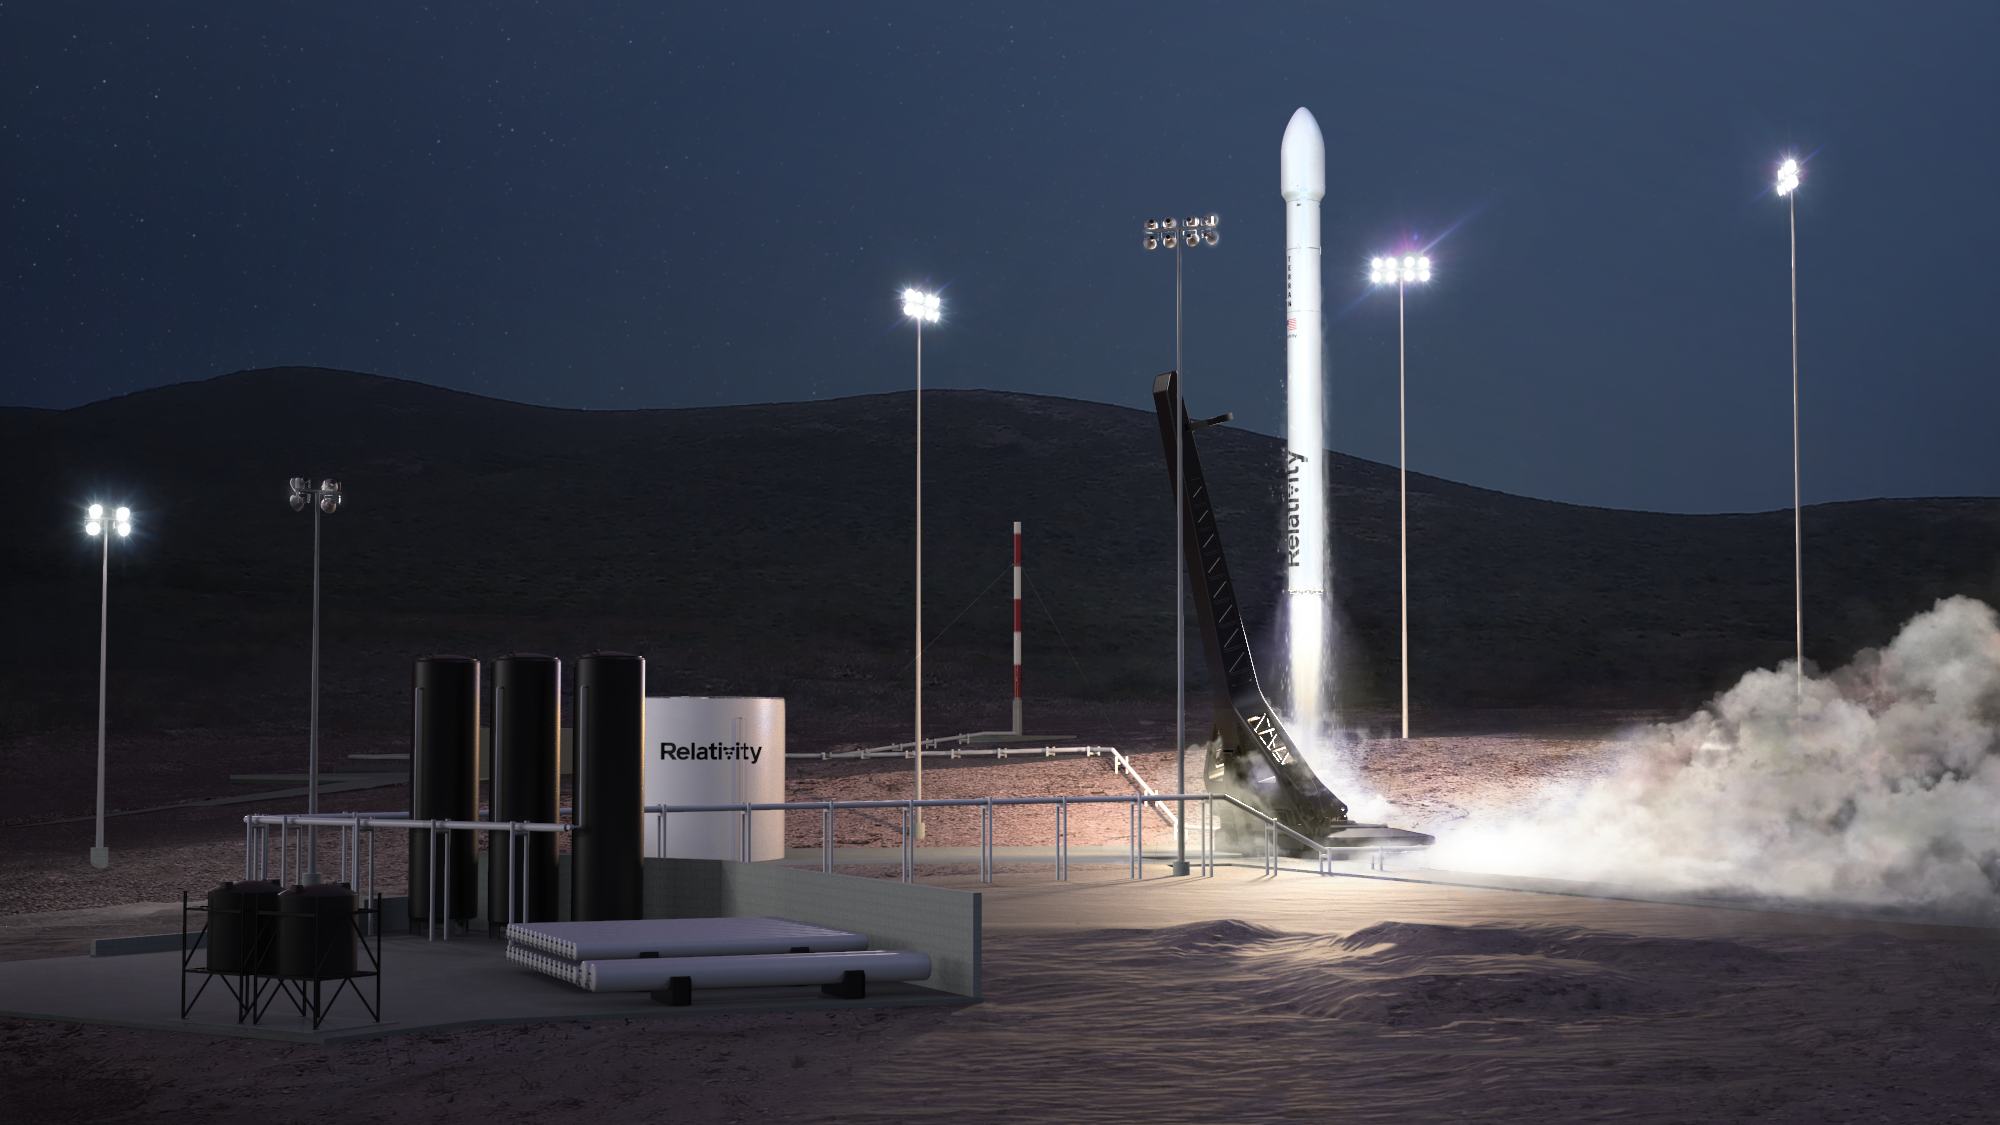 Relativity Space to Launch Iridium Satellites from New Vandenberg Launch Site